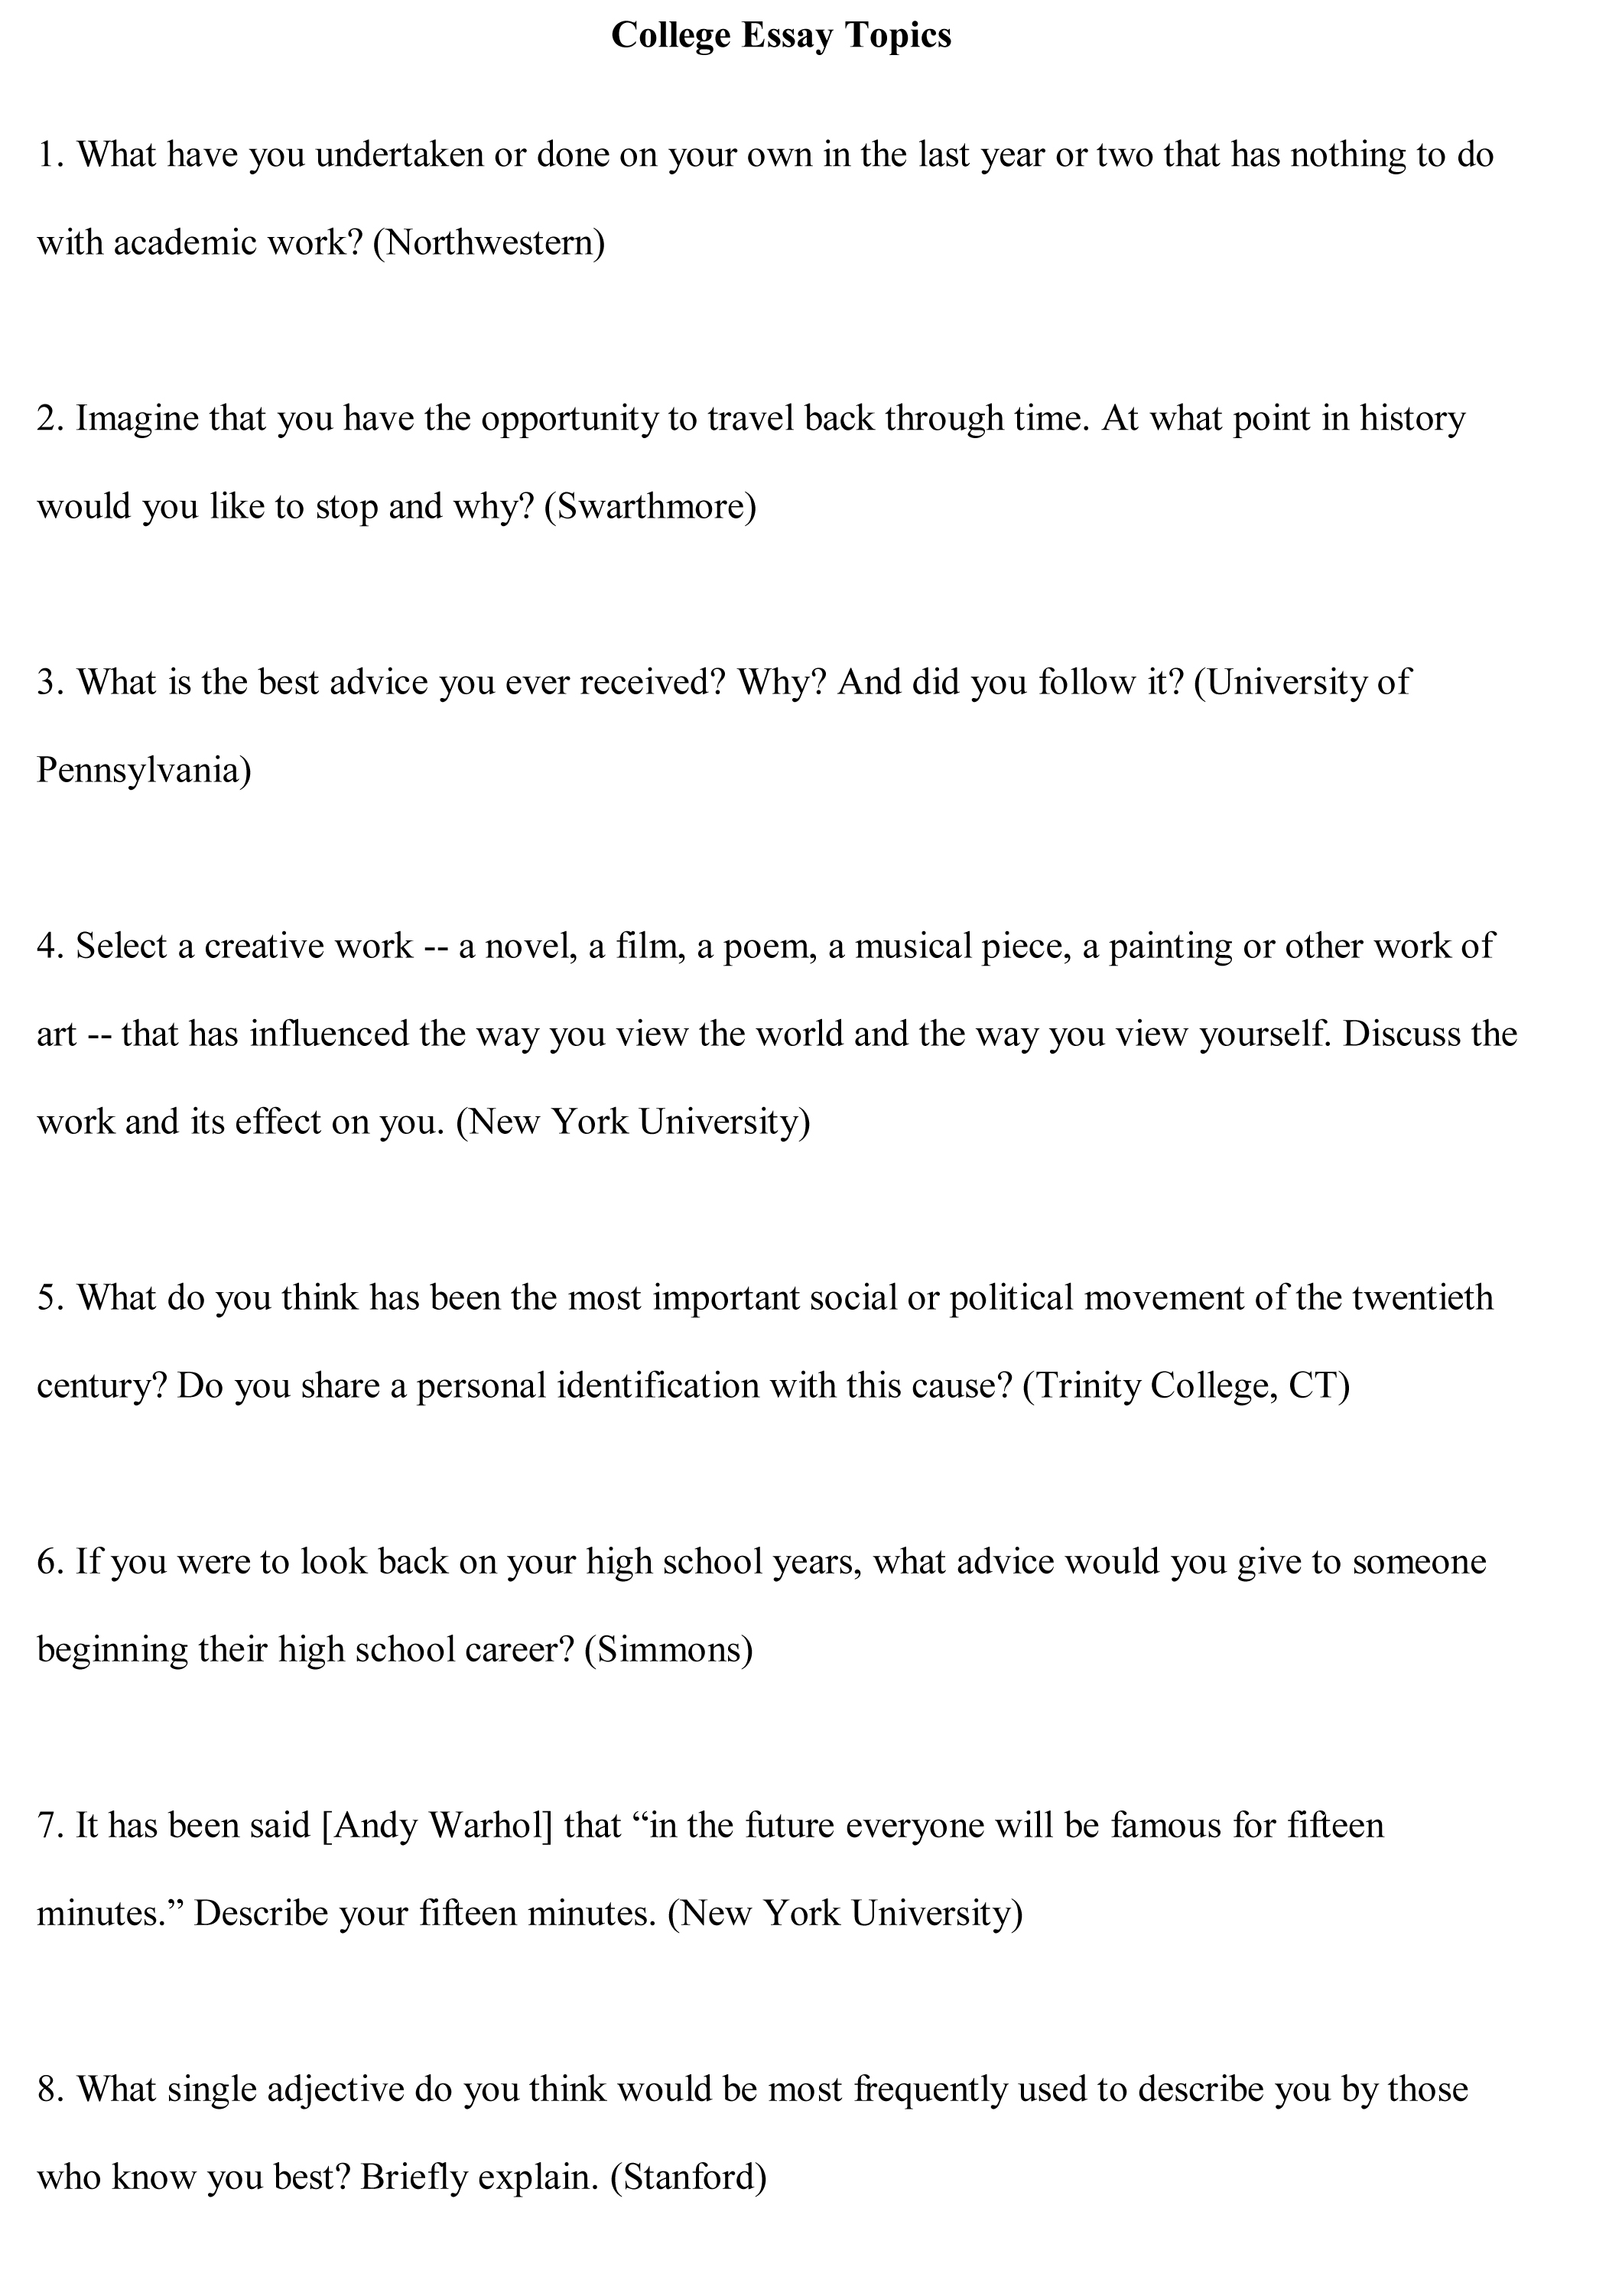 011 Essay Example College Topics Free Sample1 Ethical Argument Amazing Samples Examples Full